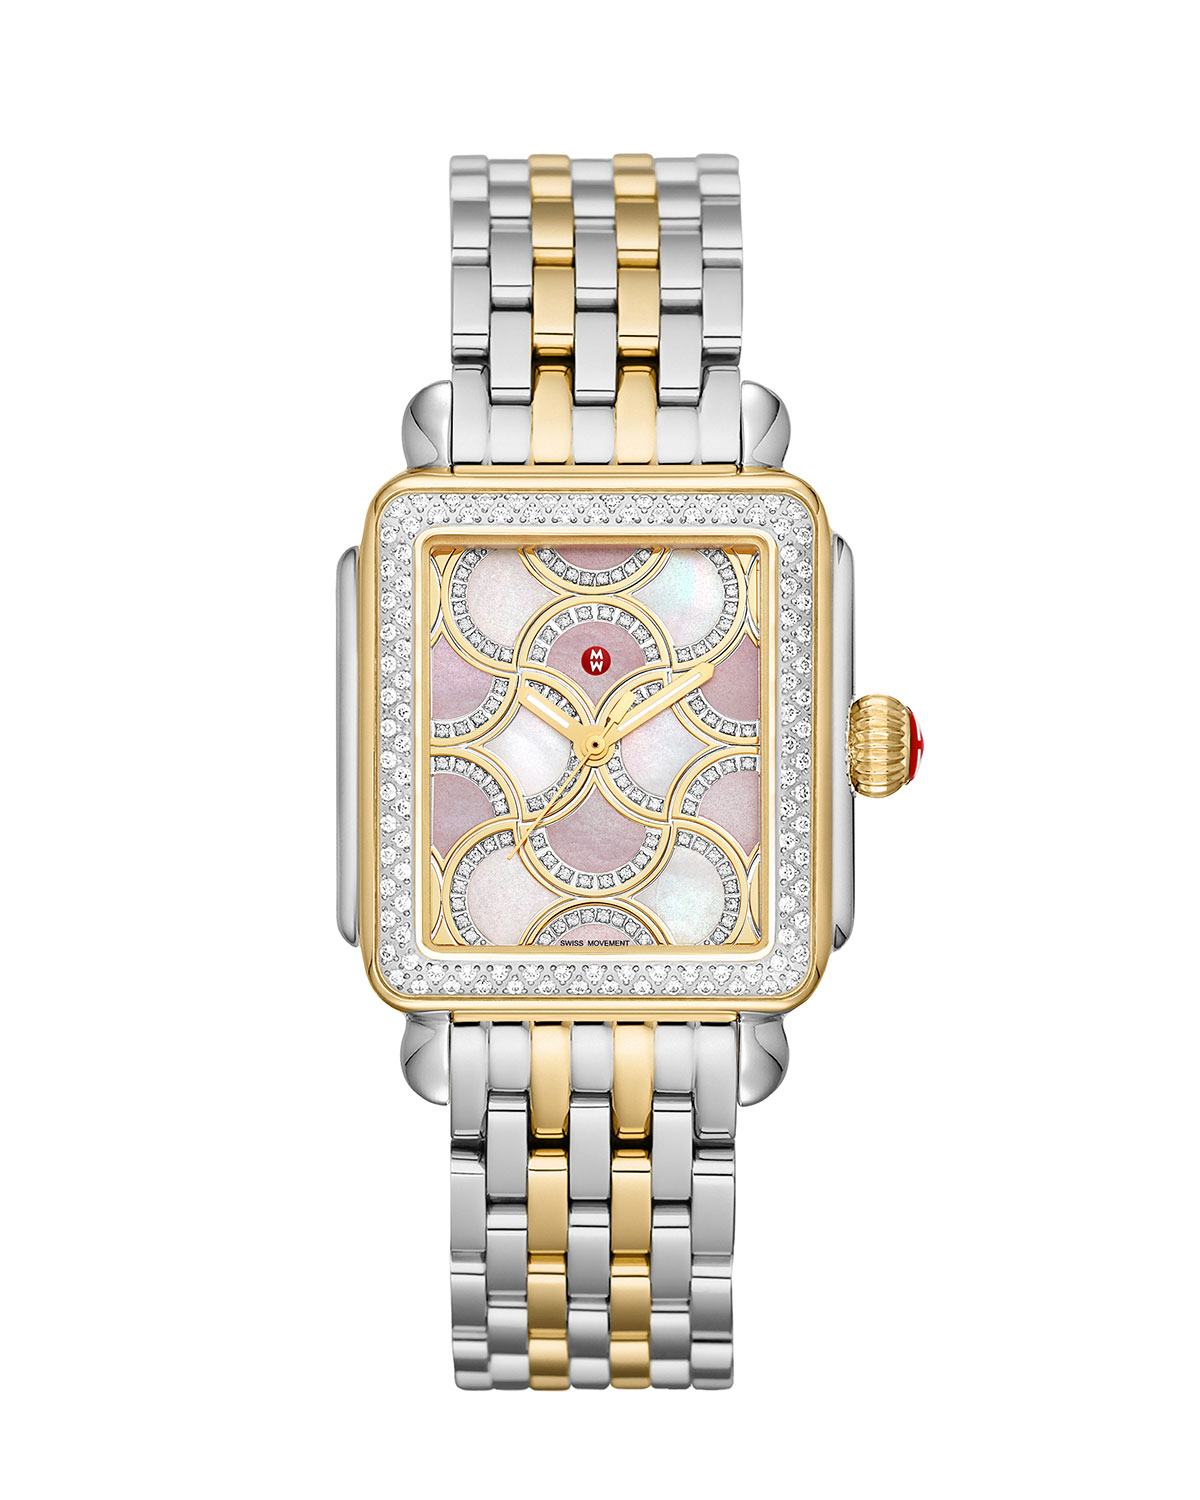 Deco Two-Tone Diamond Case with Mosaic Dial Watch